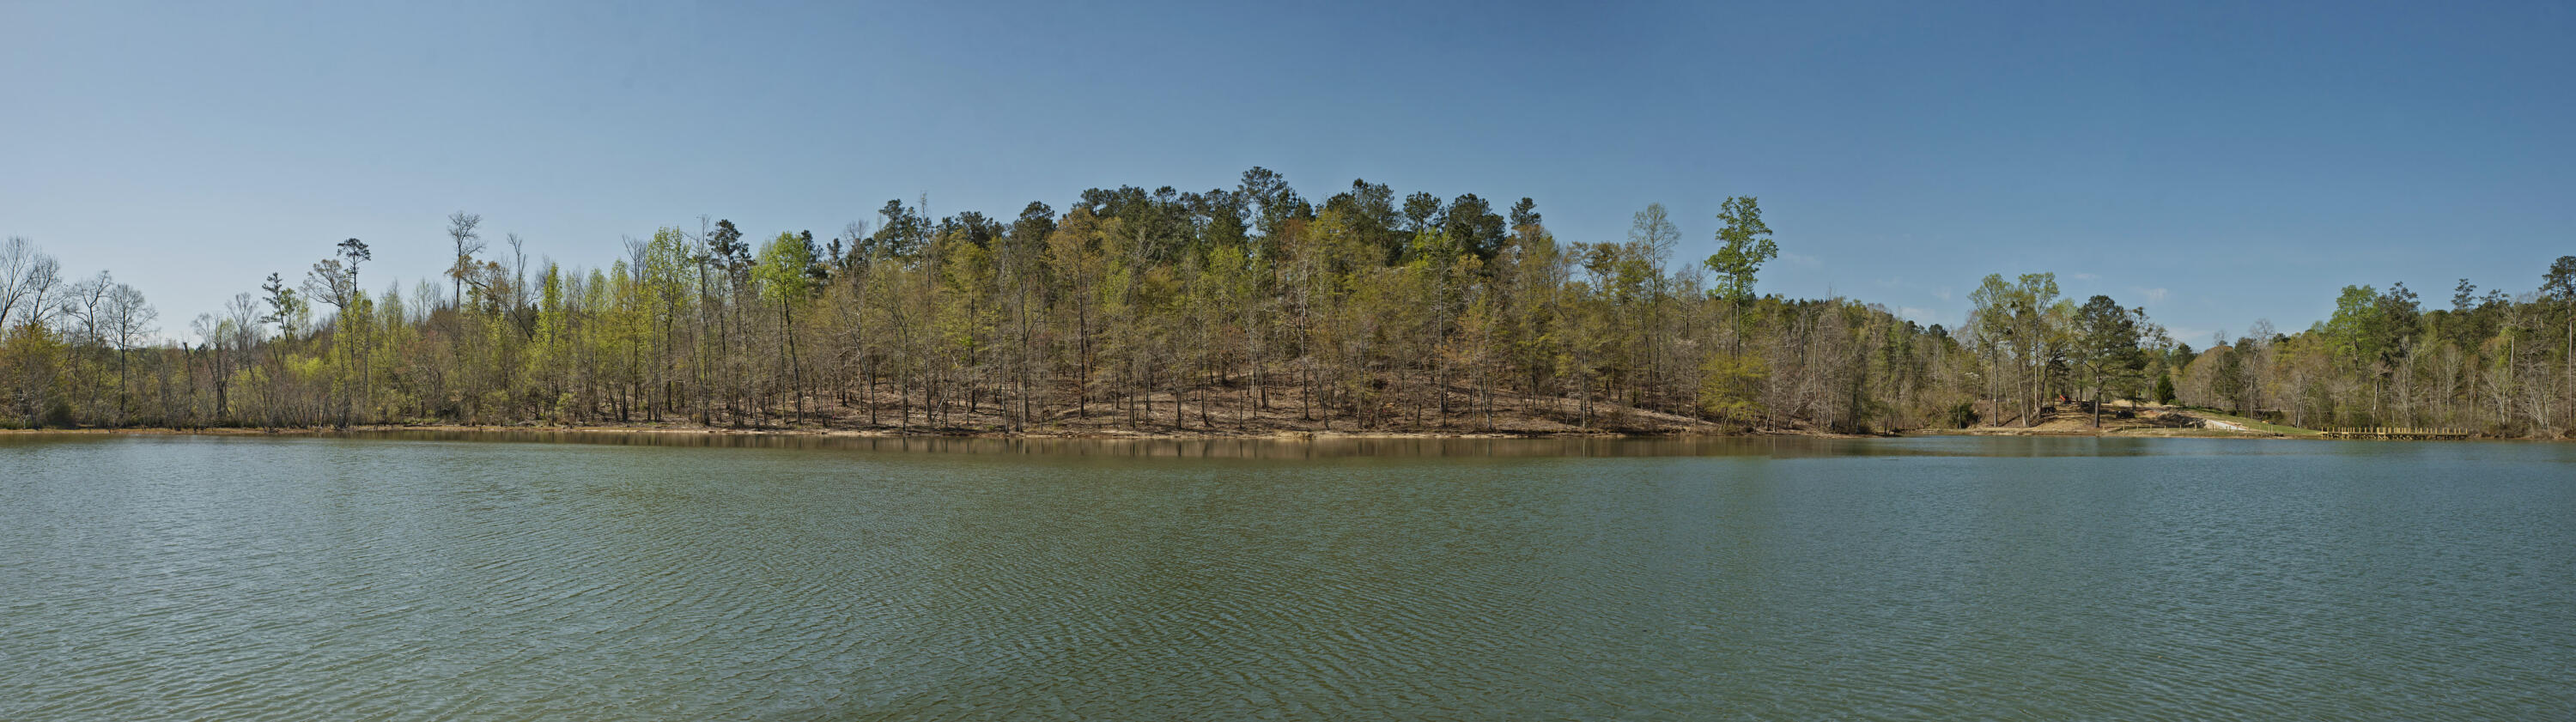 Lot 4 Indian Campground Rd, Eclectic, AL 36024